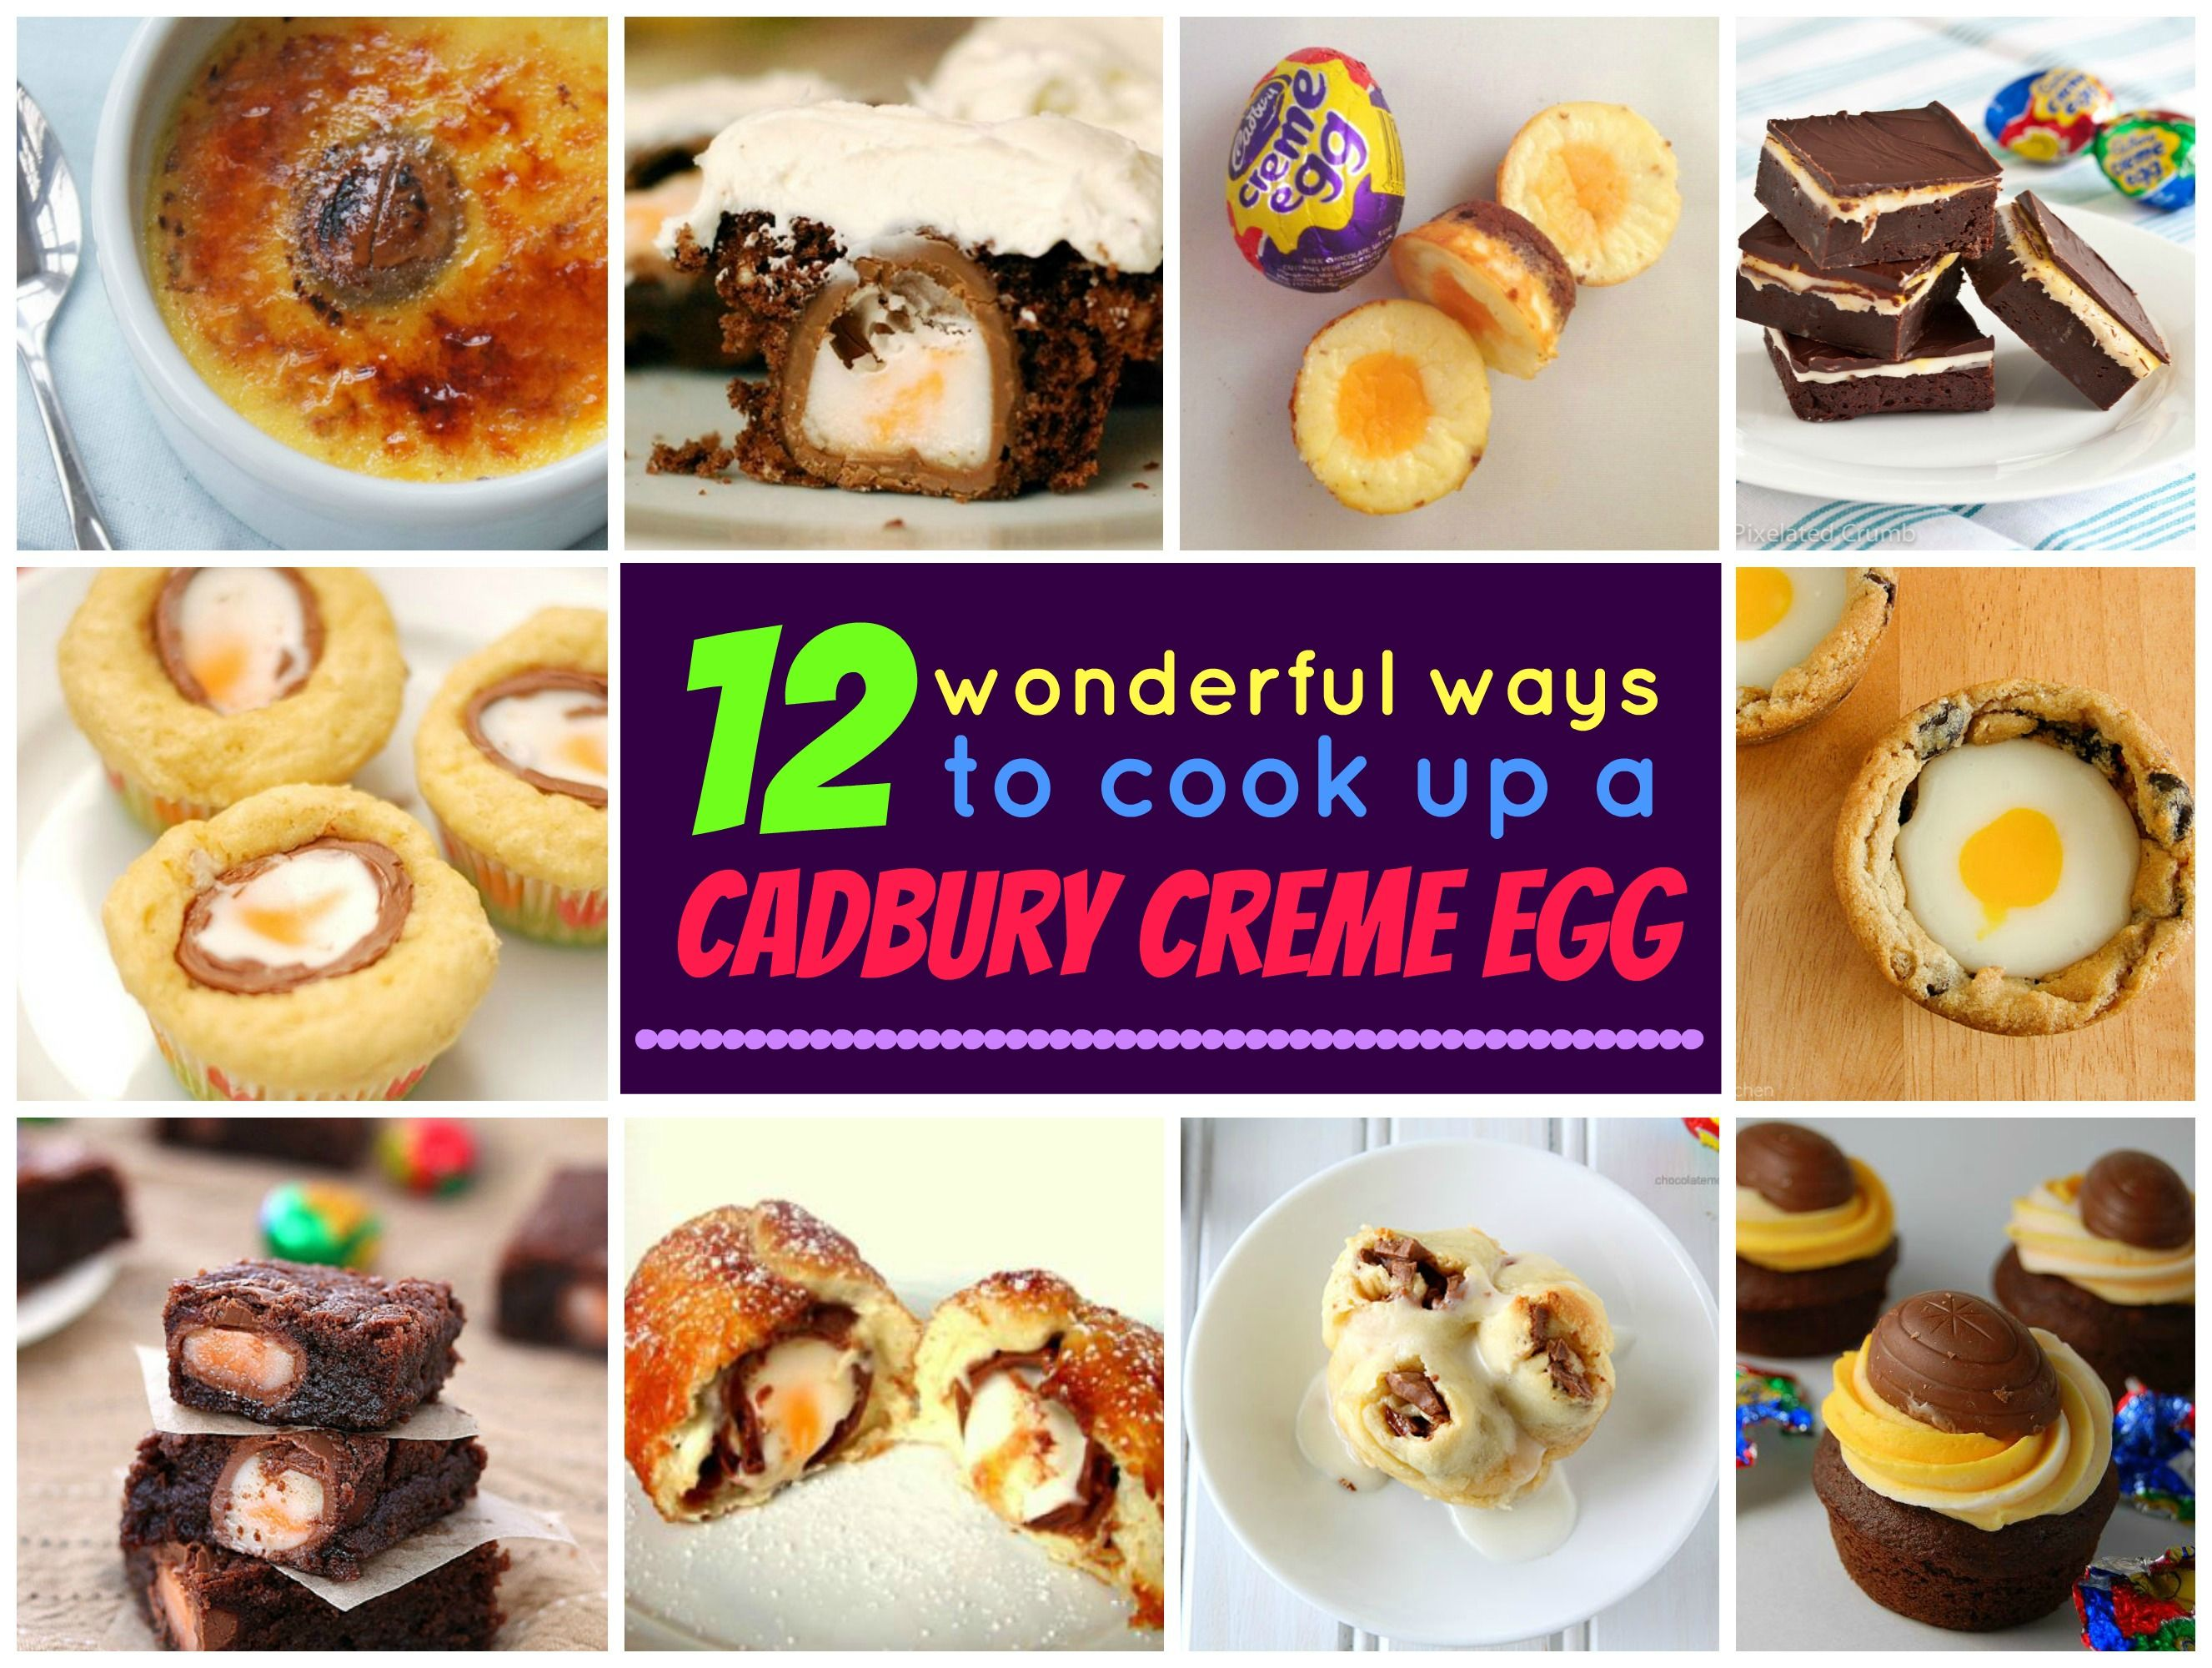 recipe: cadbury creme egg ingredients [32]